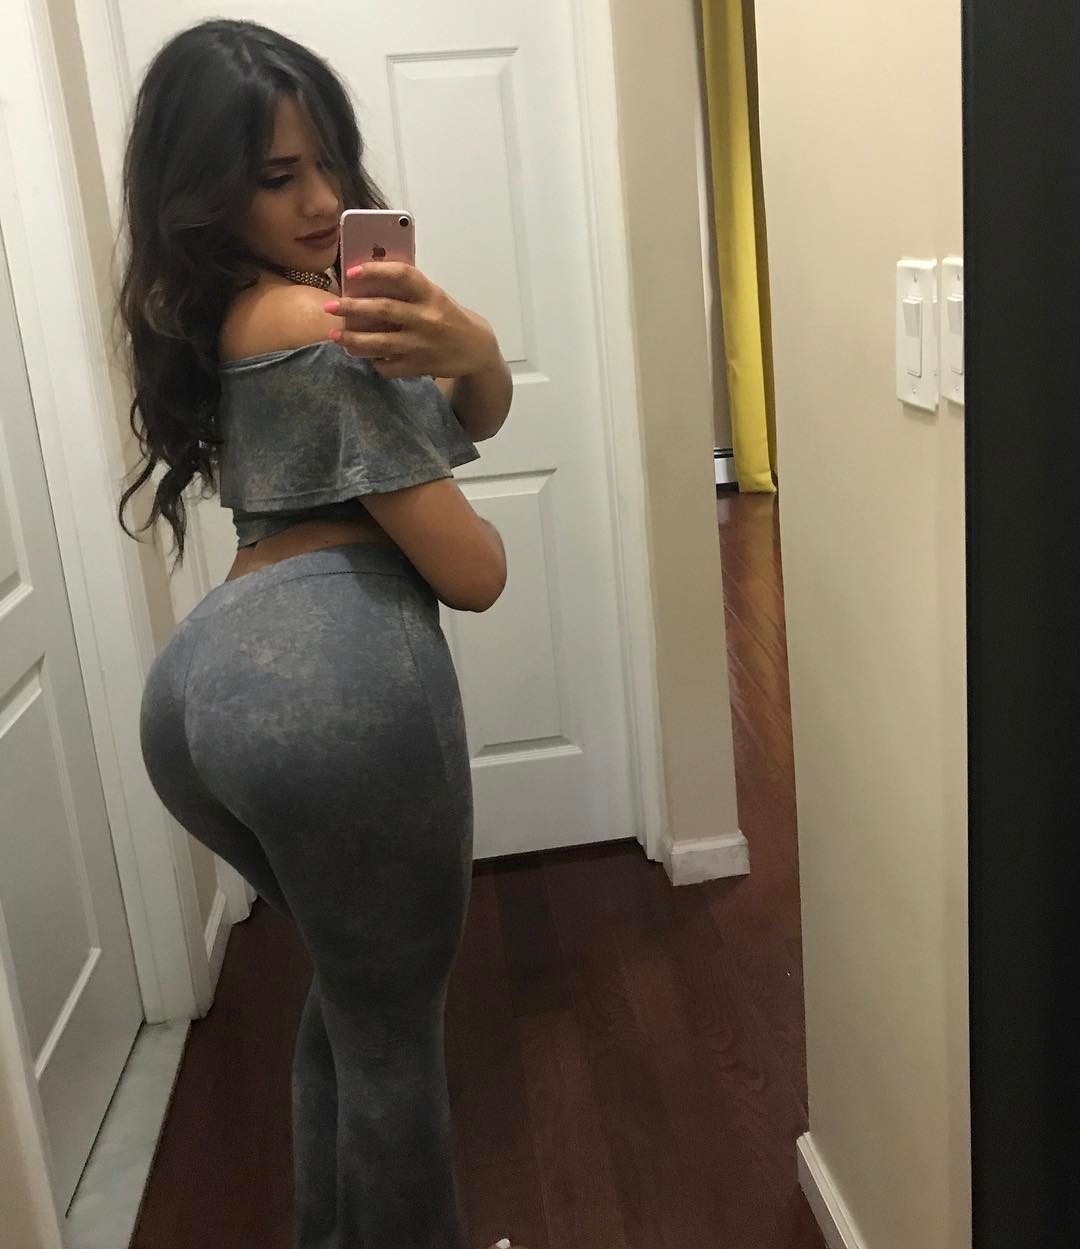 Gatas do Instagram #10: Ashley Ortiz